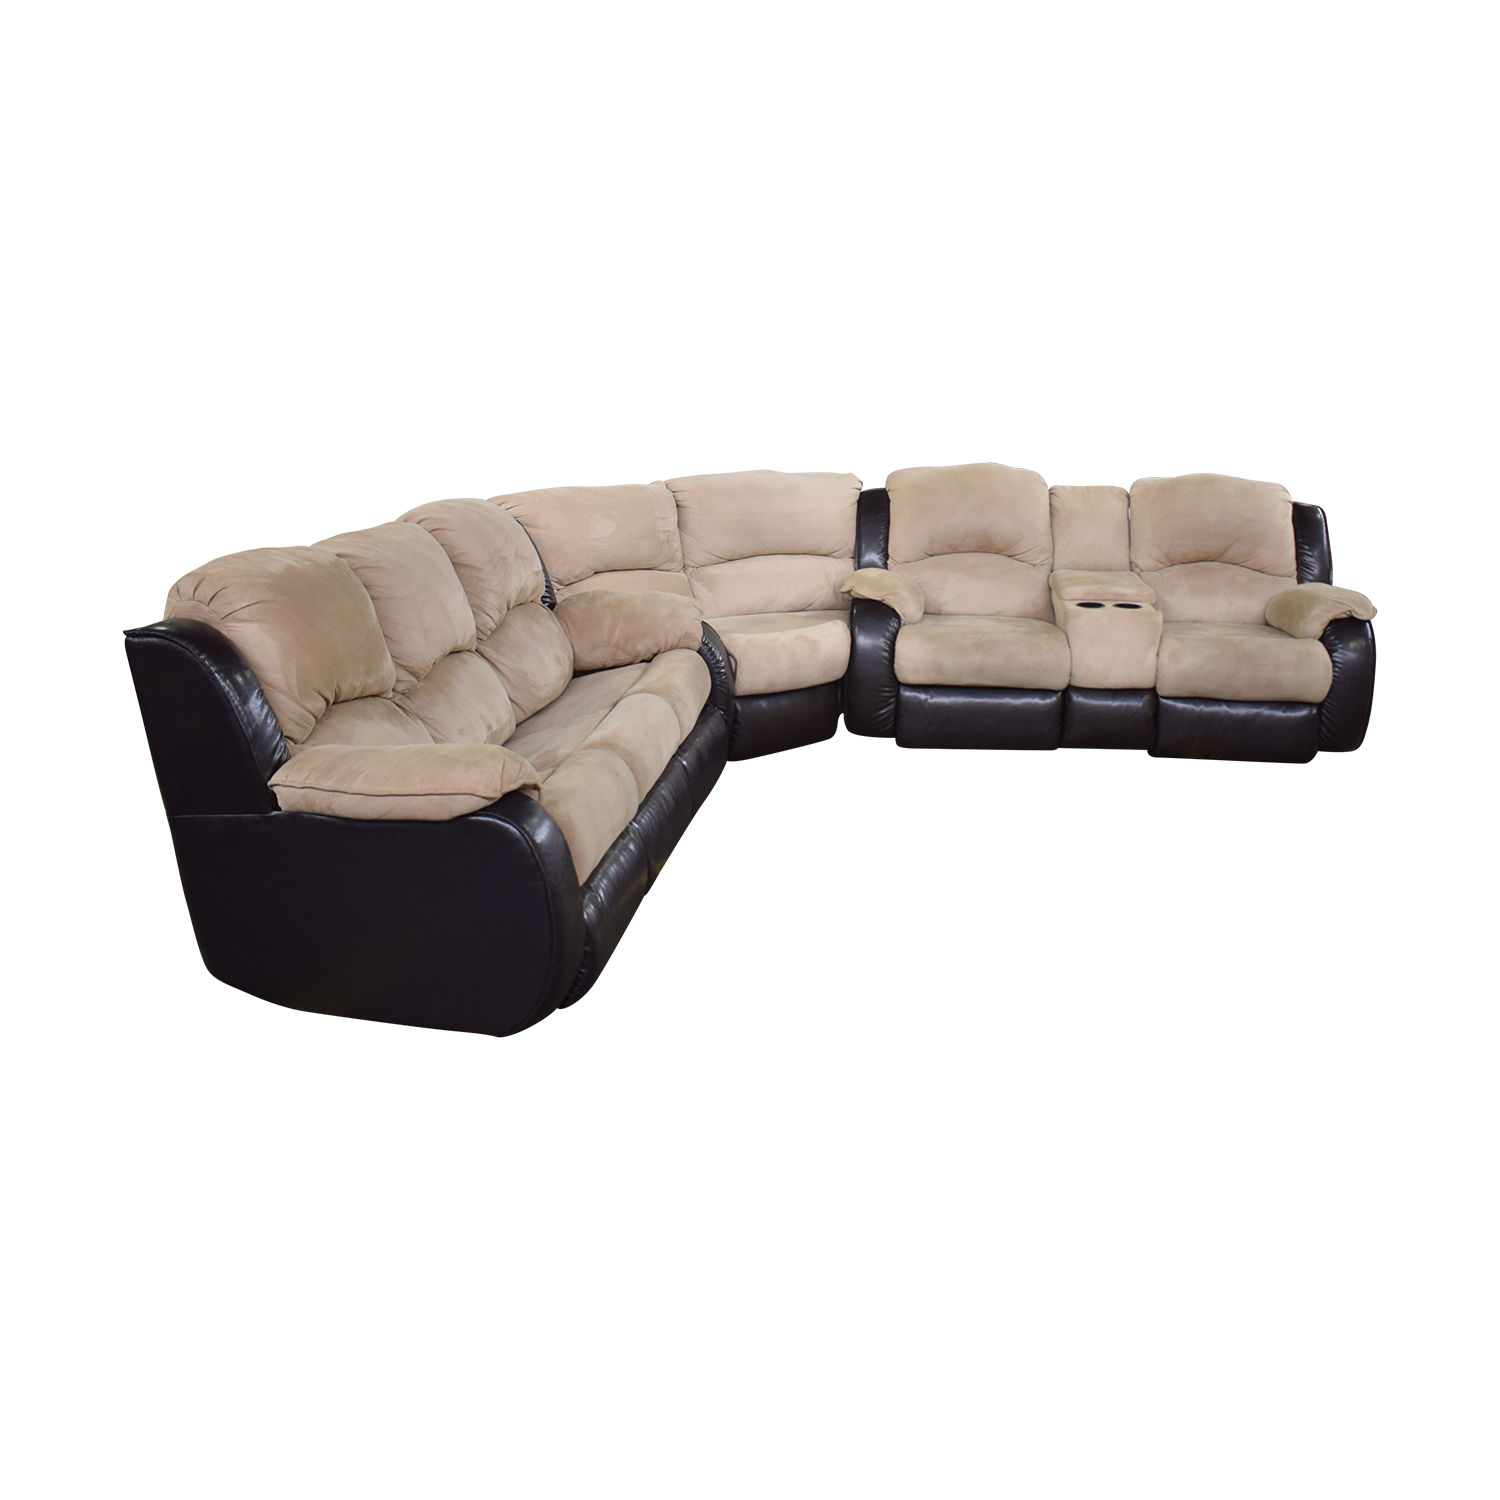 Southern Motion Southern Motion Reclining Sectional Sleeper Sofa